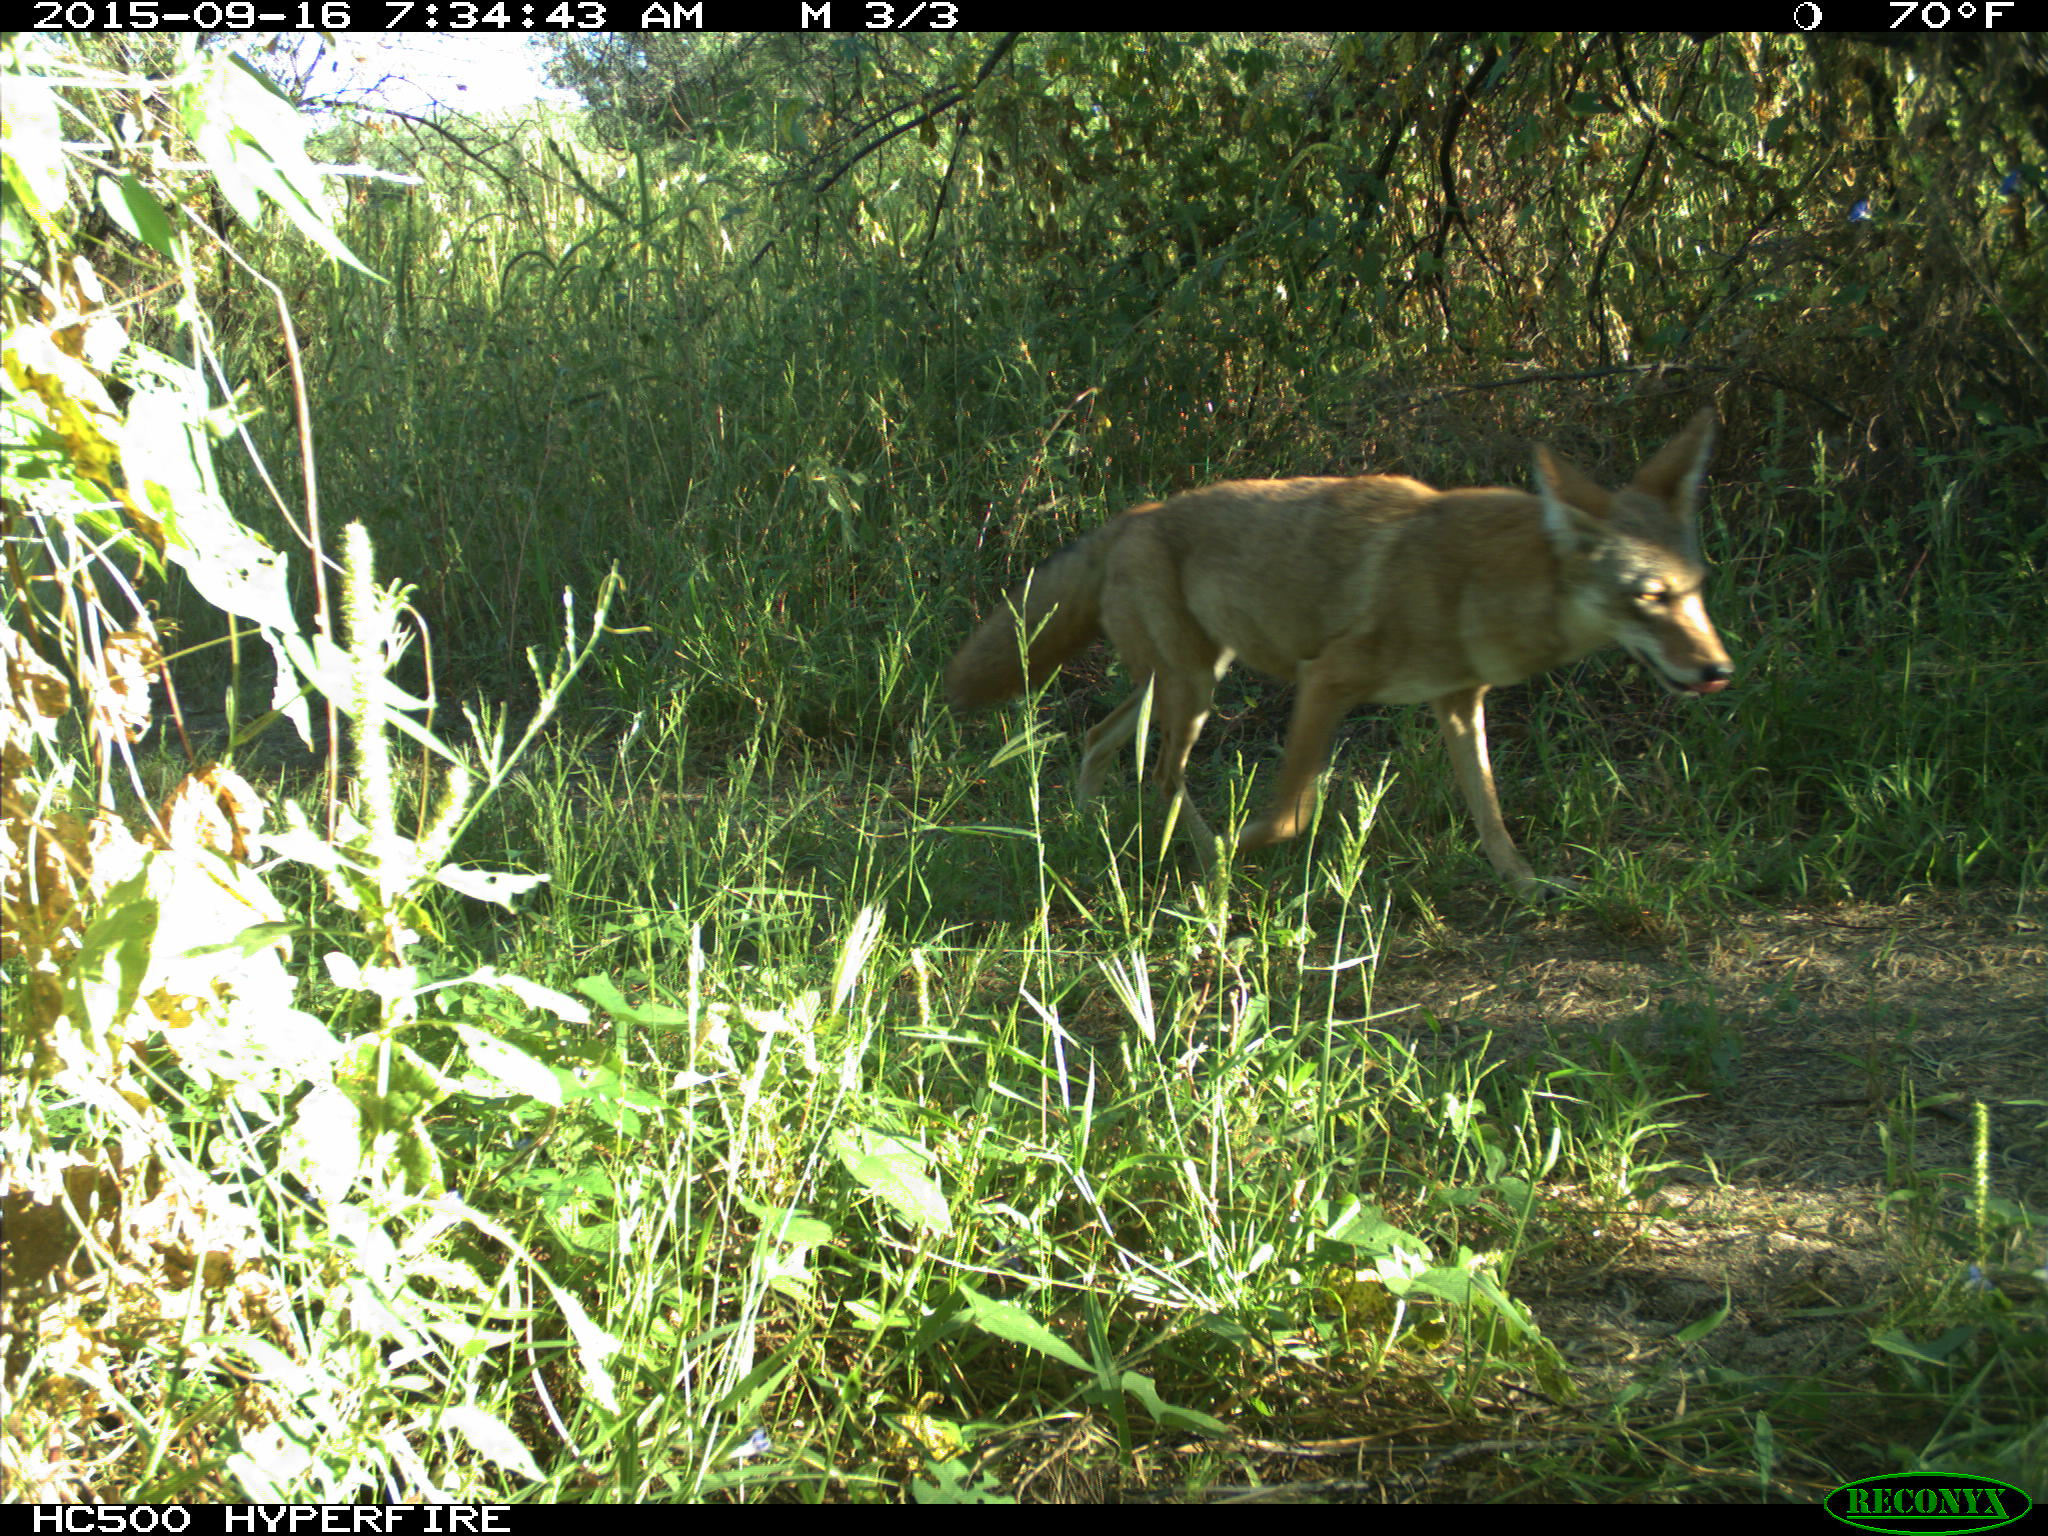 And...Another coyote, who appears to like mornings! Welcome!